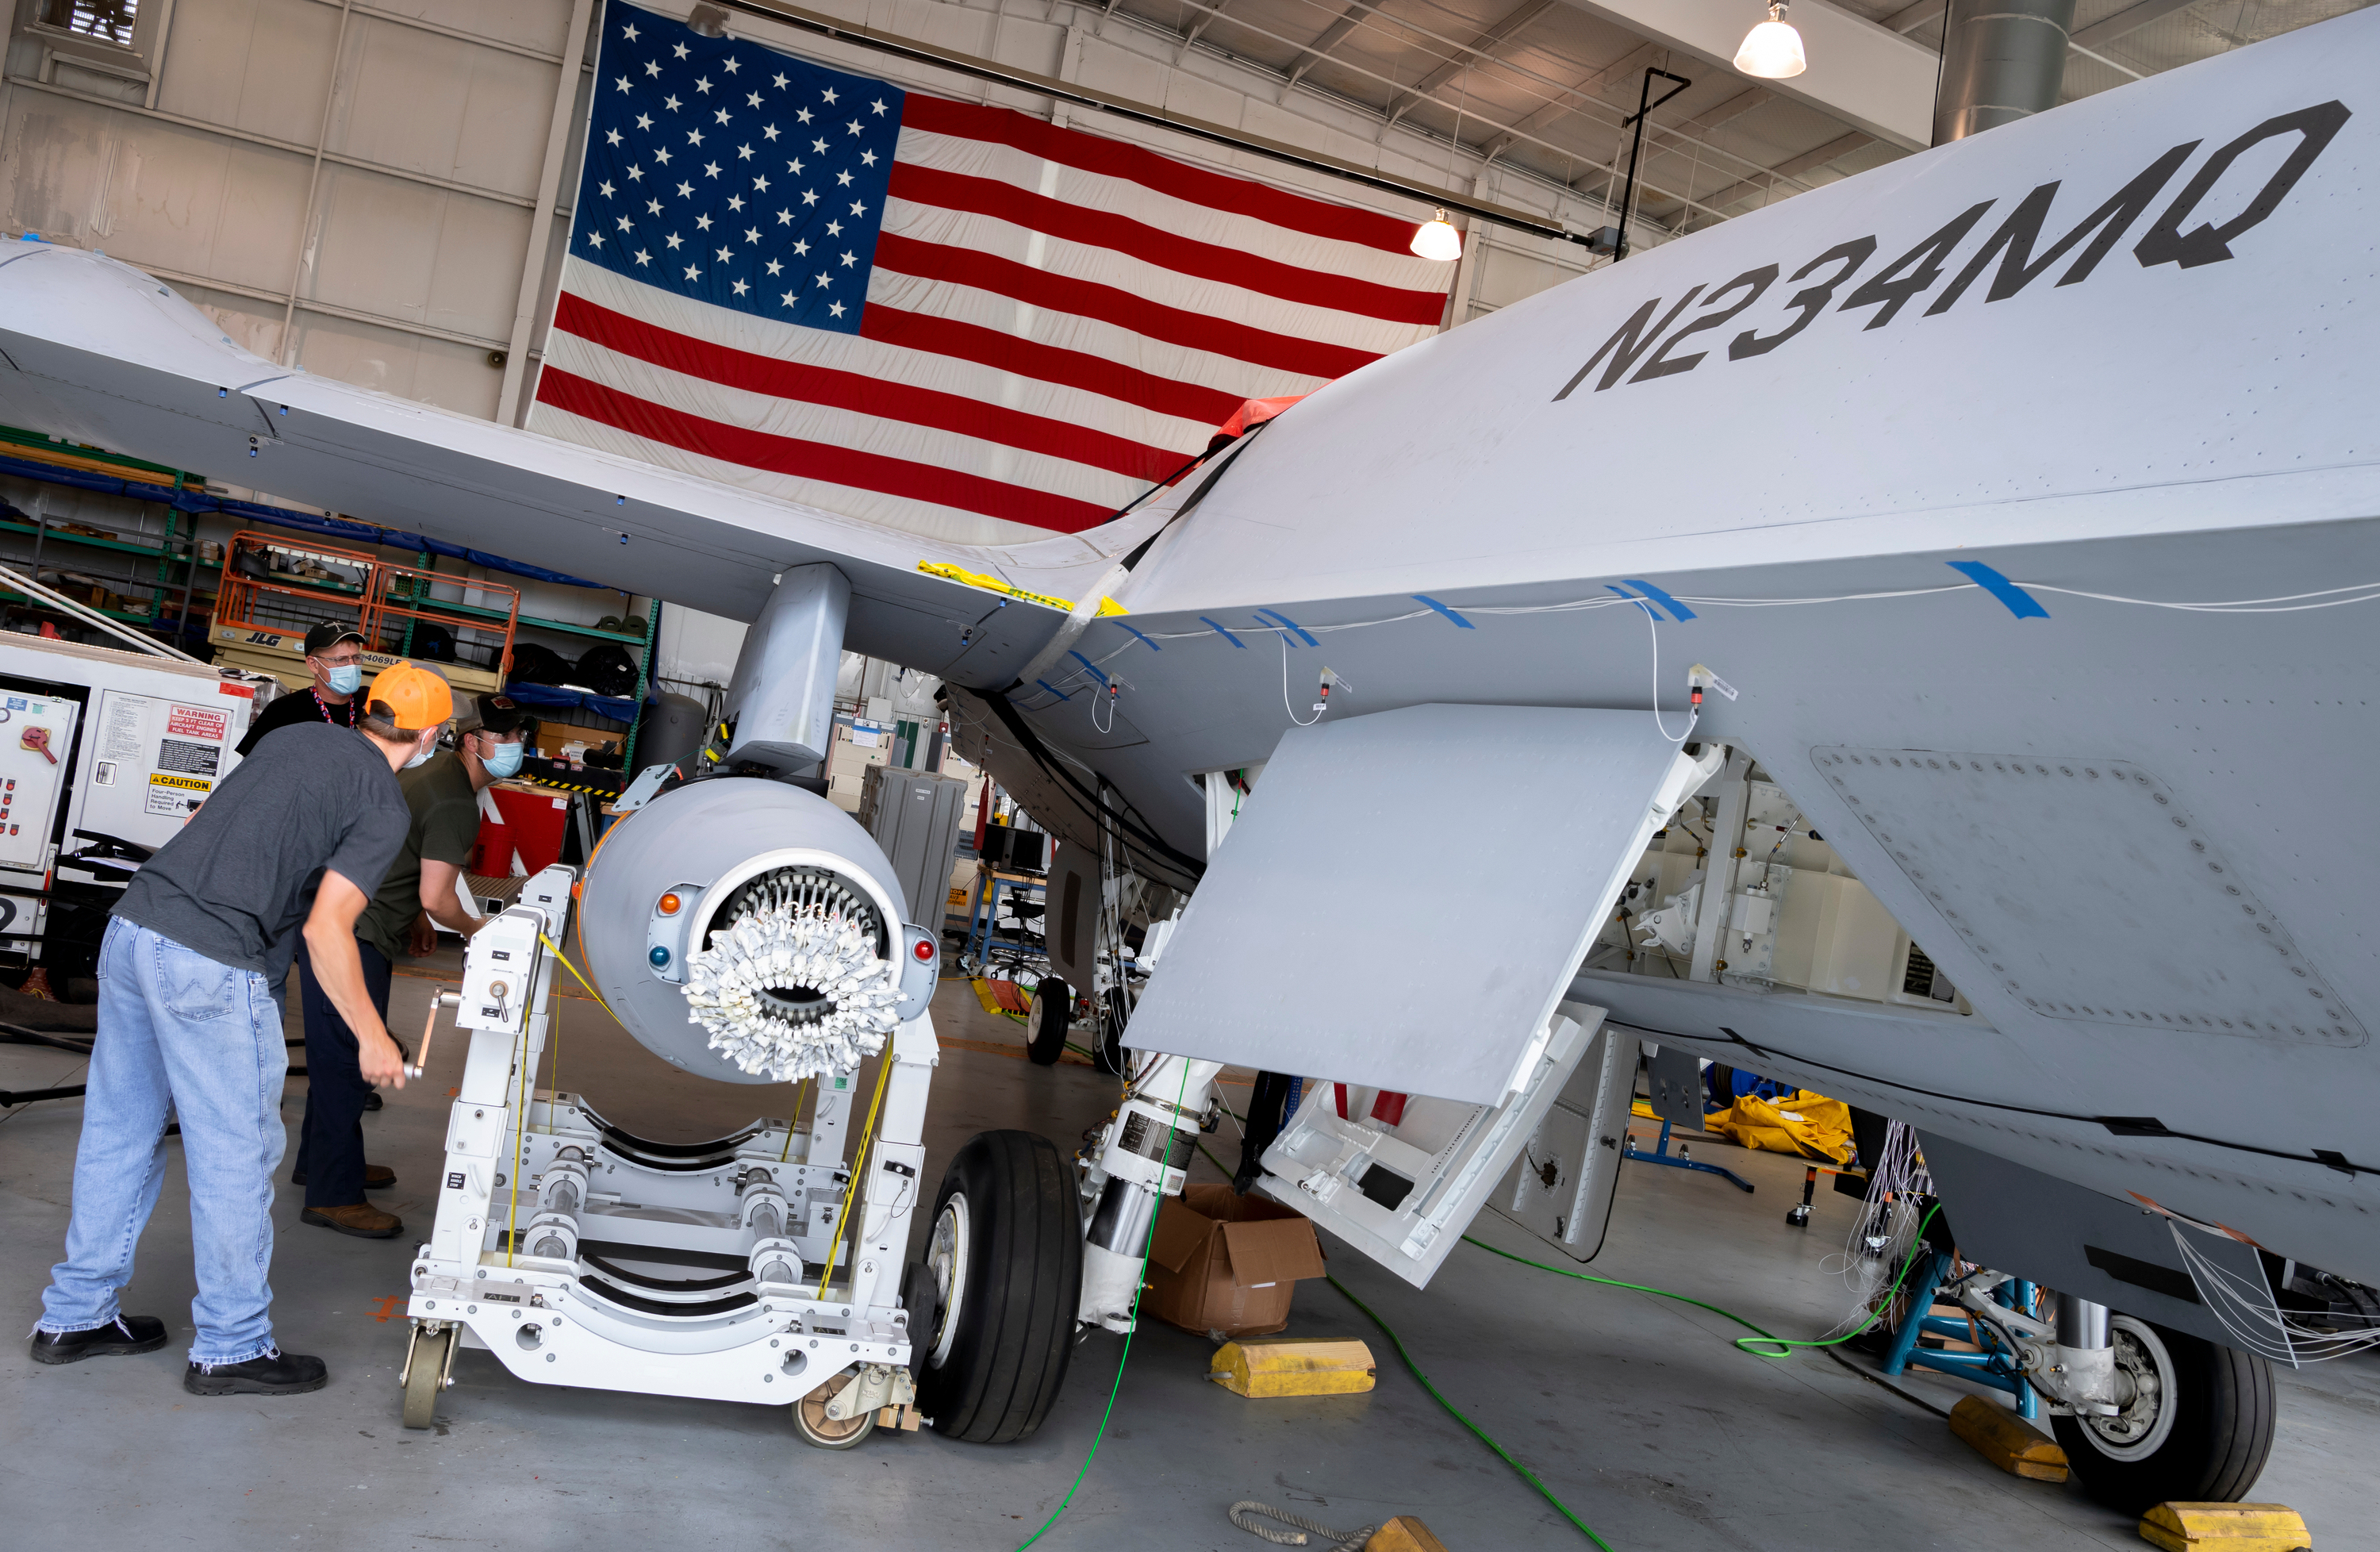 An aerial refueling store is installed on the MQ-25 T1 test article. (Courtesy of Boeing)